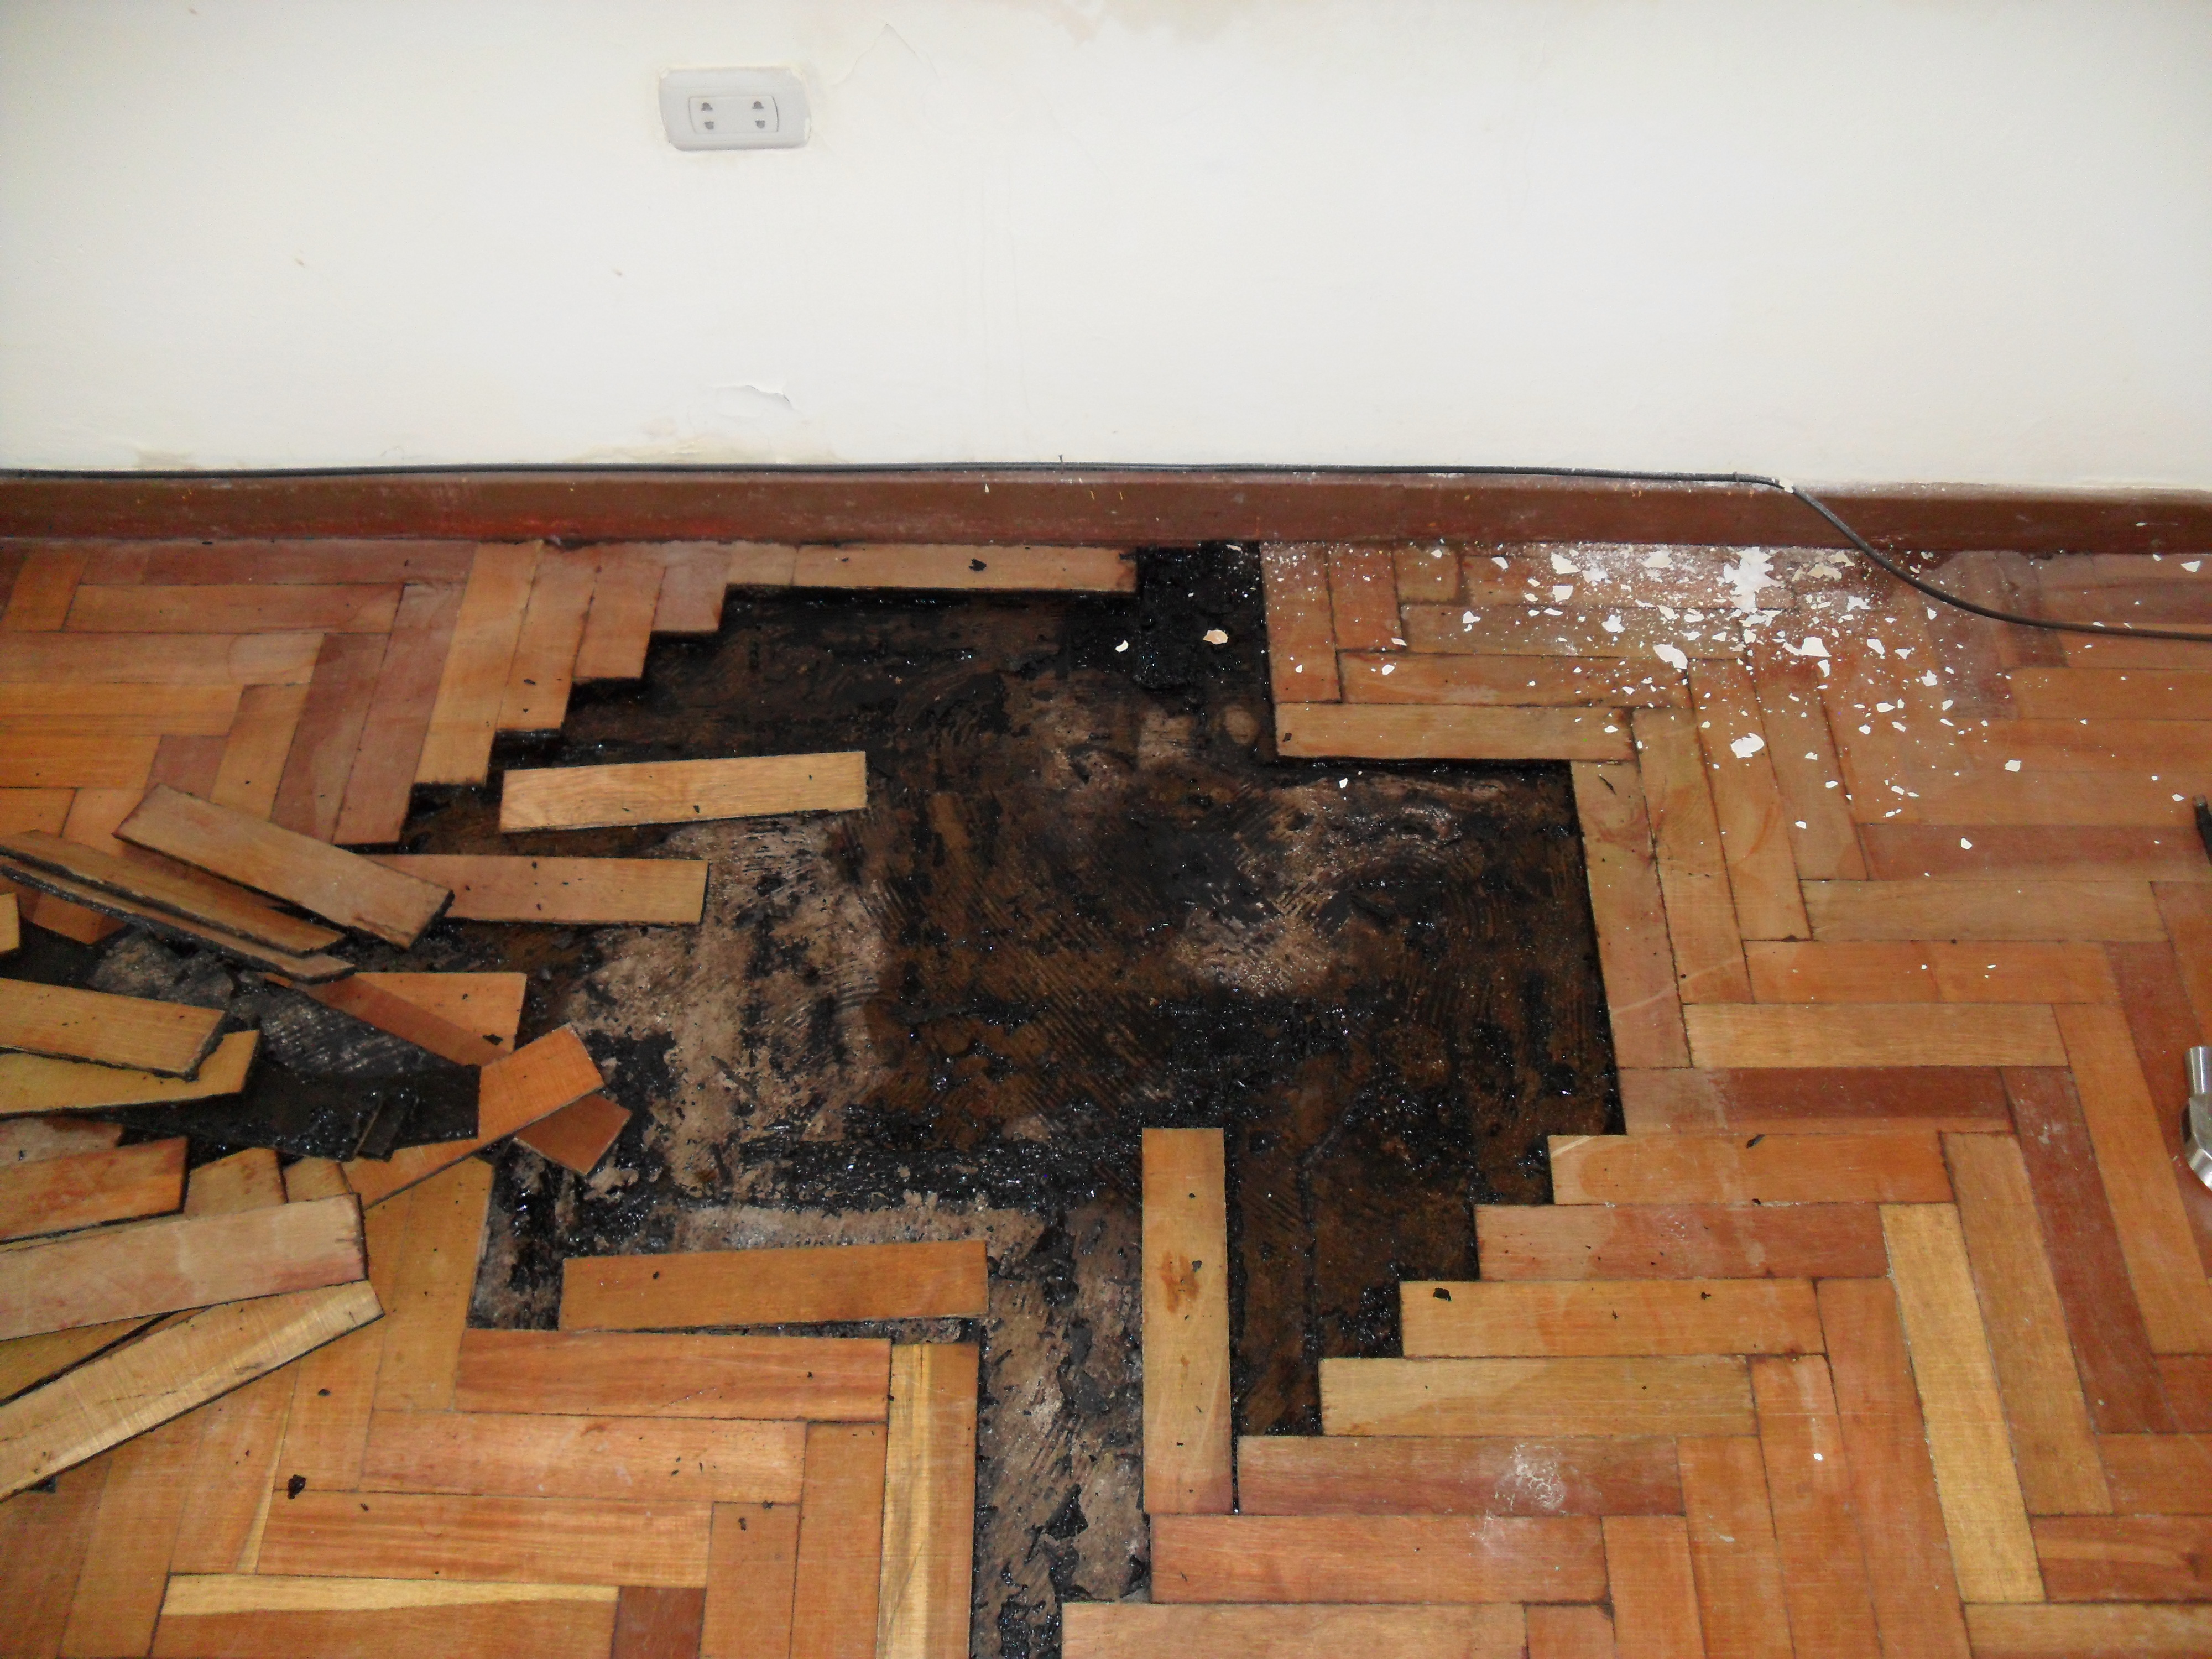 Hardwood Floor Water Damage allow water soaked wood to dry before sanding or refinishing Hardwood Floor Water Damage